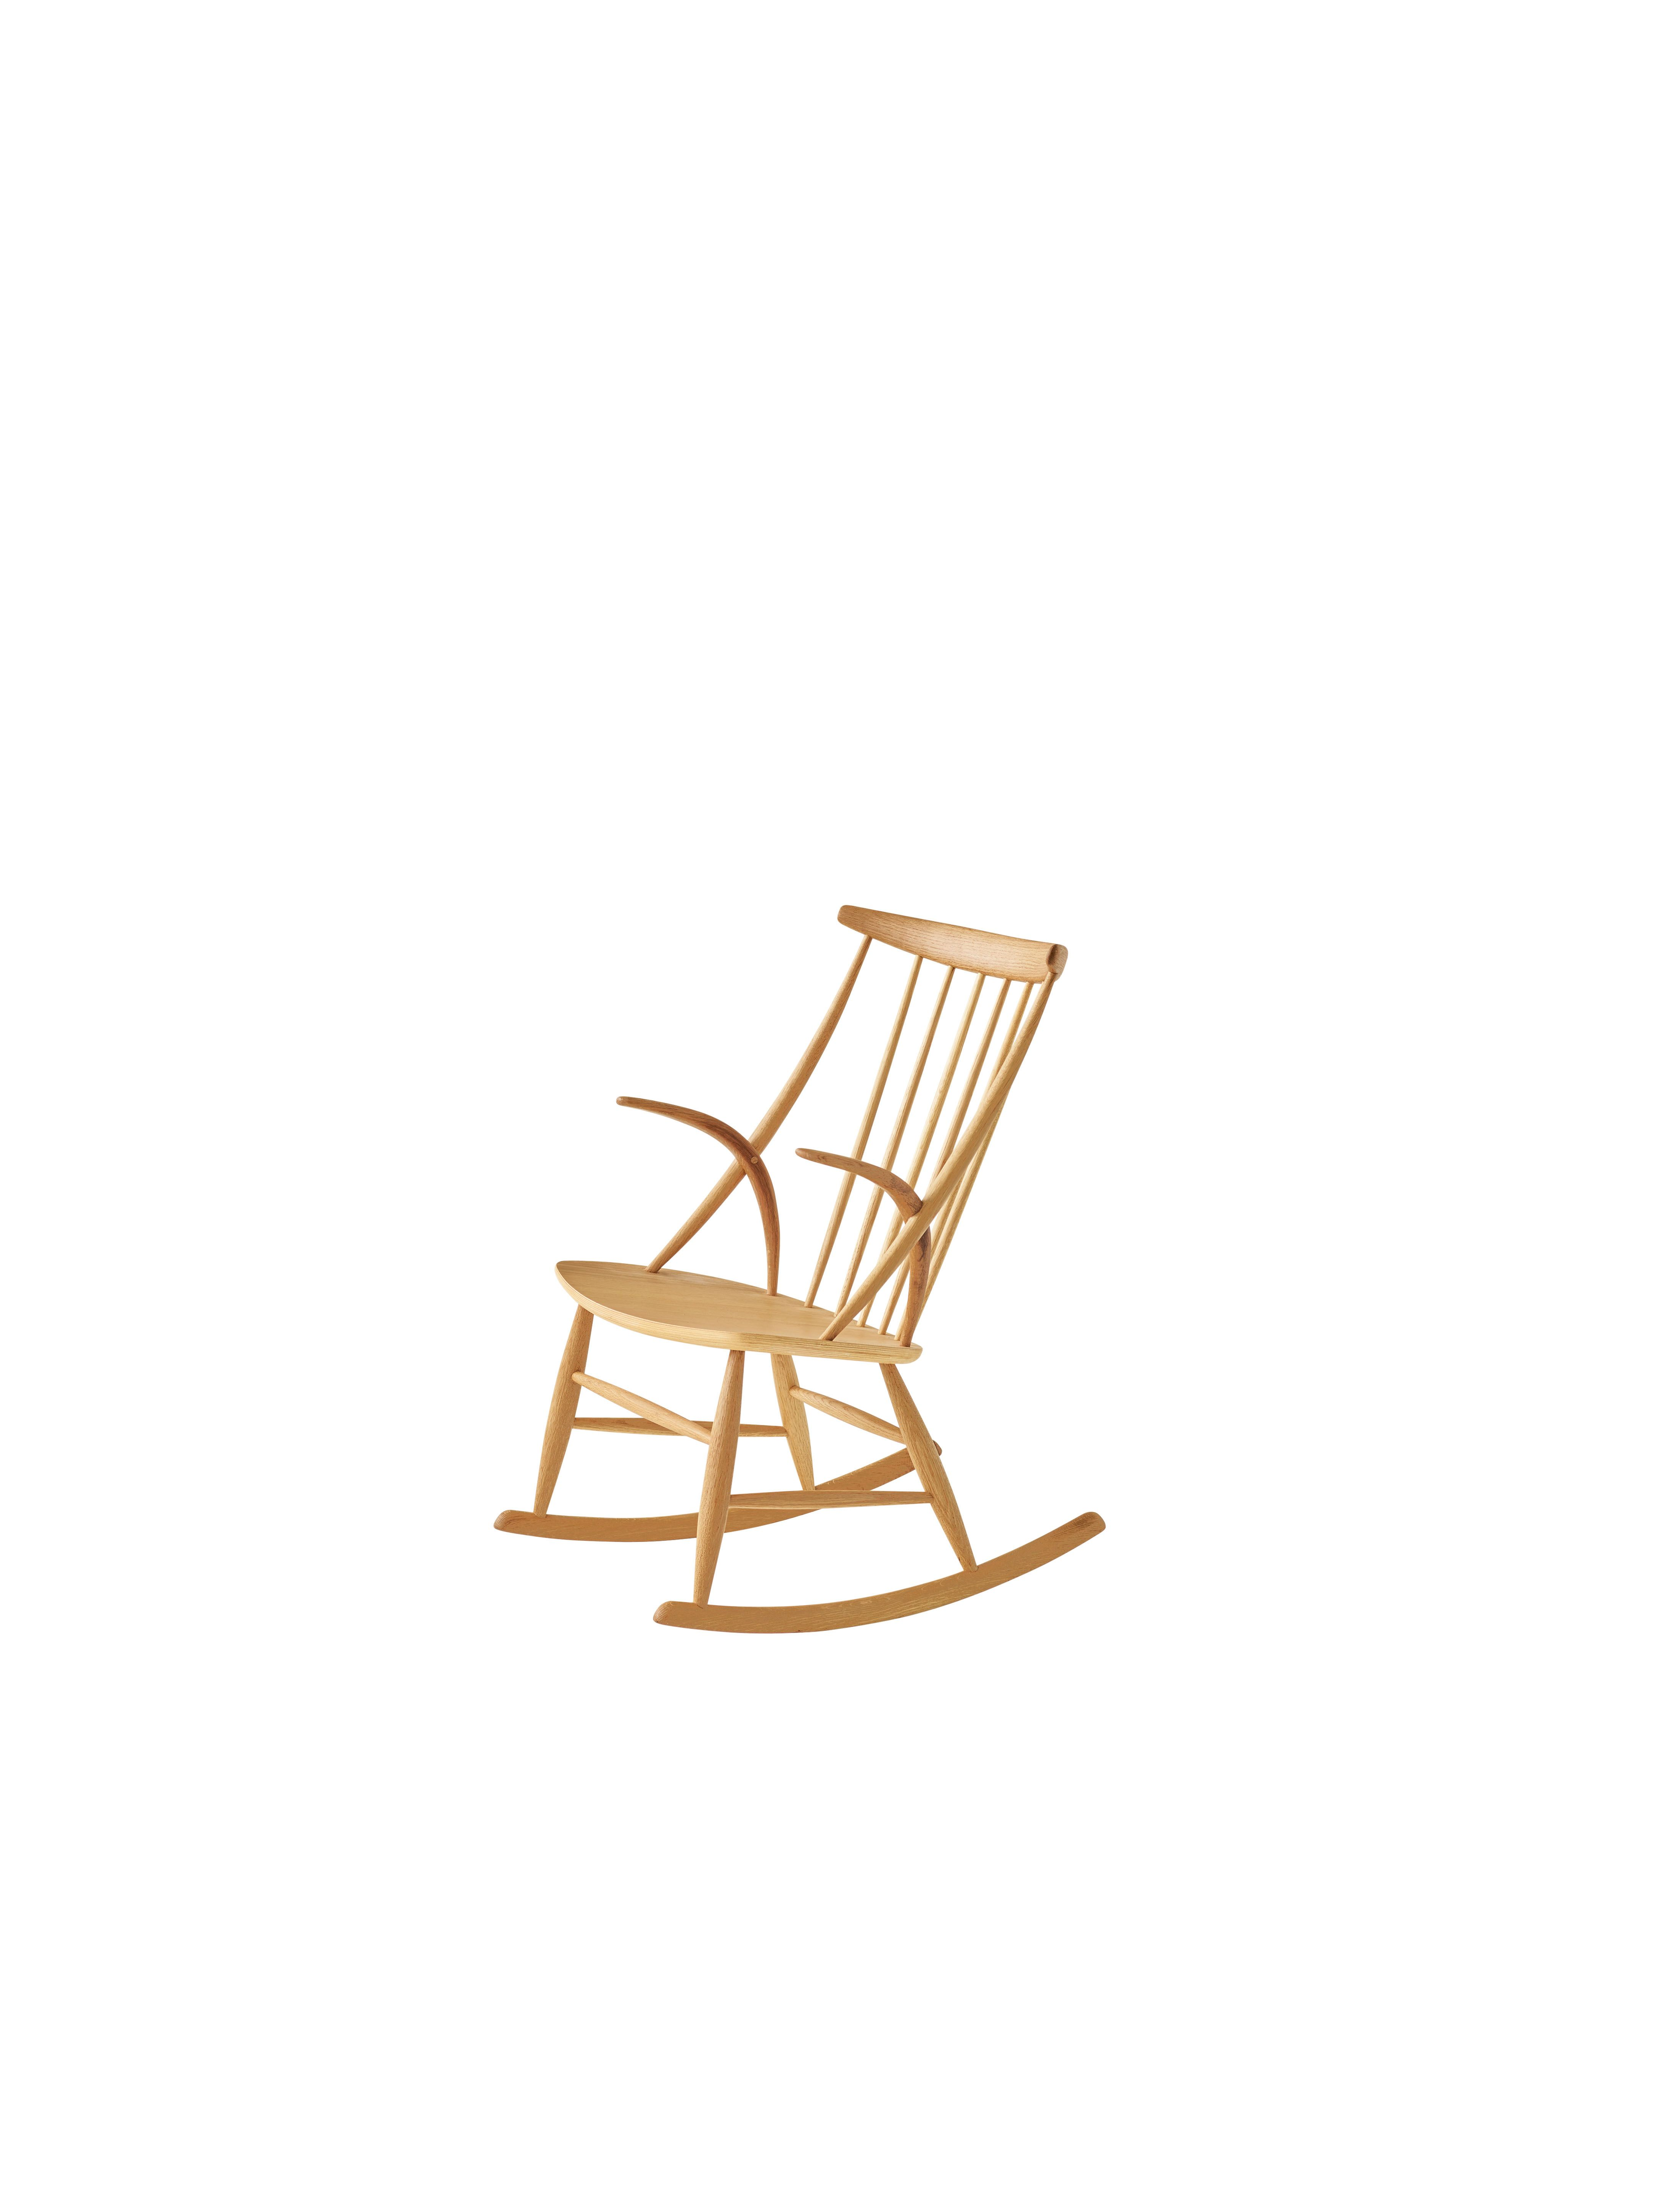 10 Rocking Chairs For Indoors Or Outdoors ...